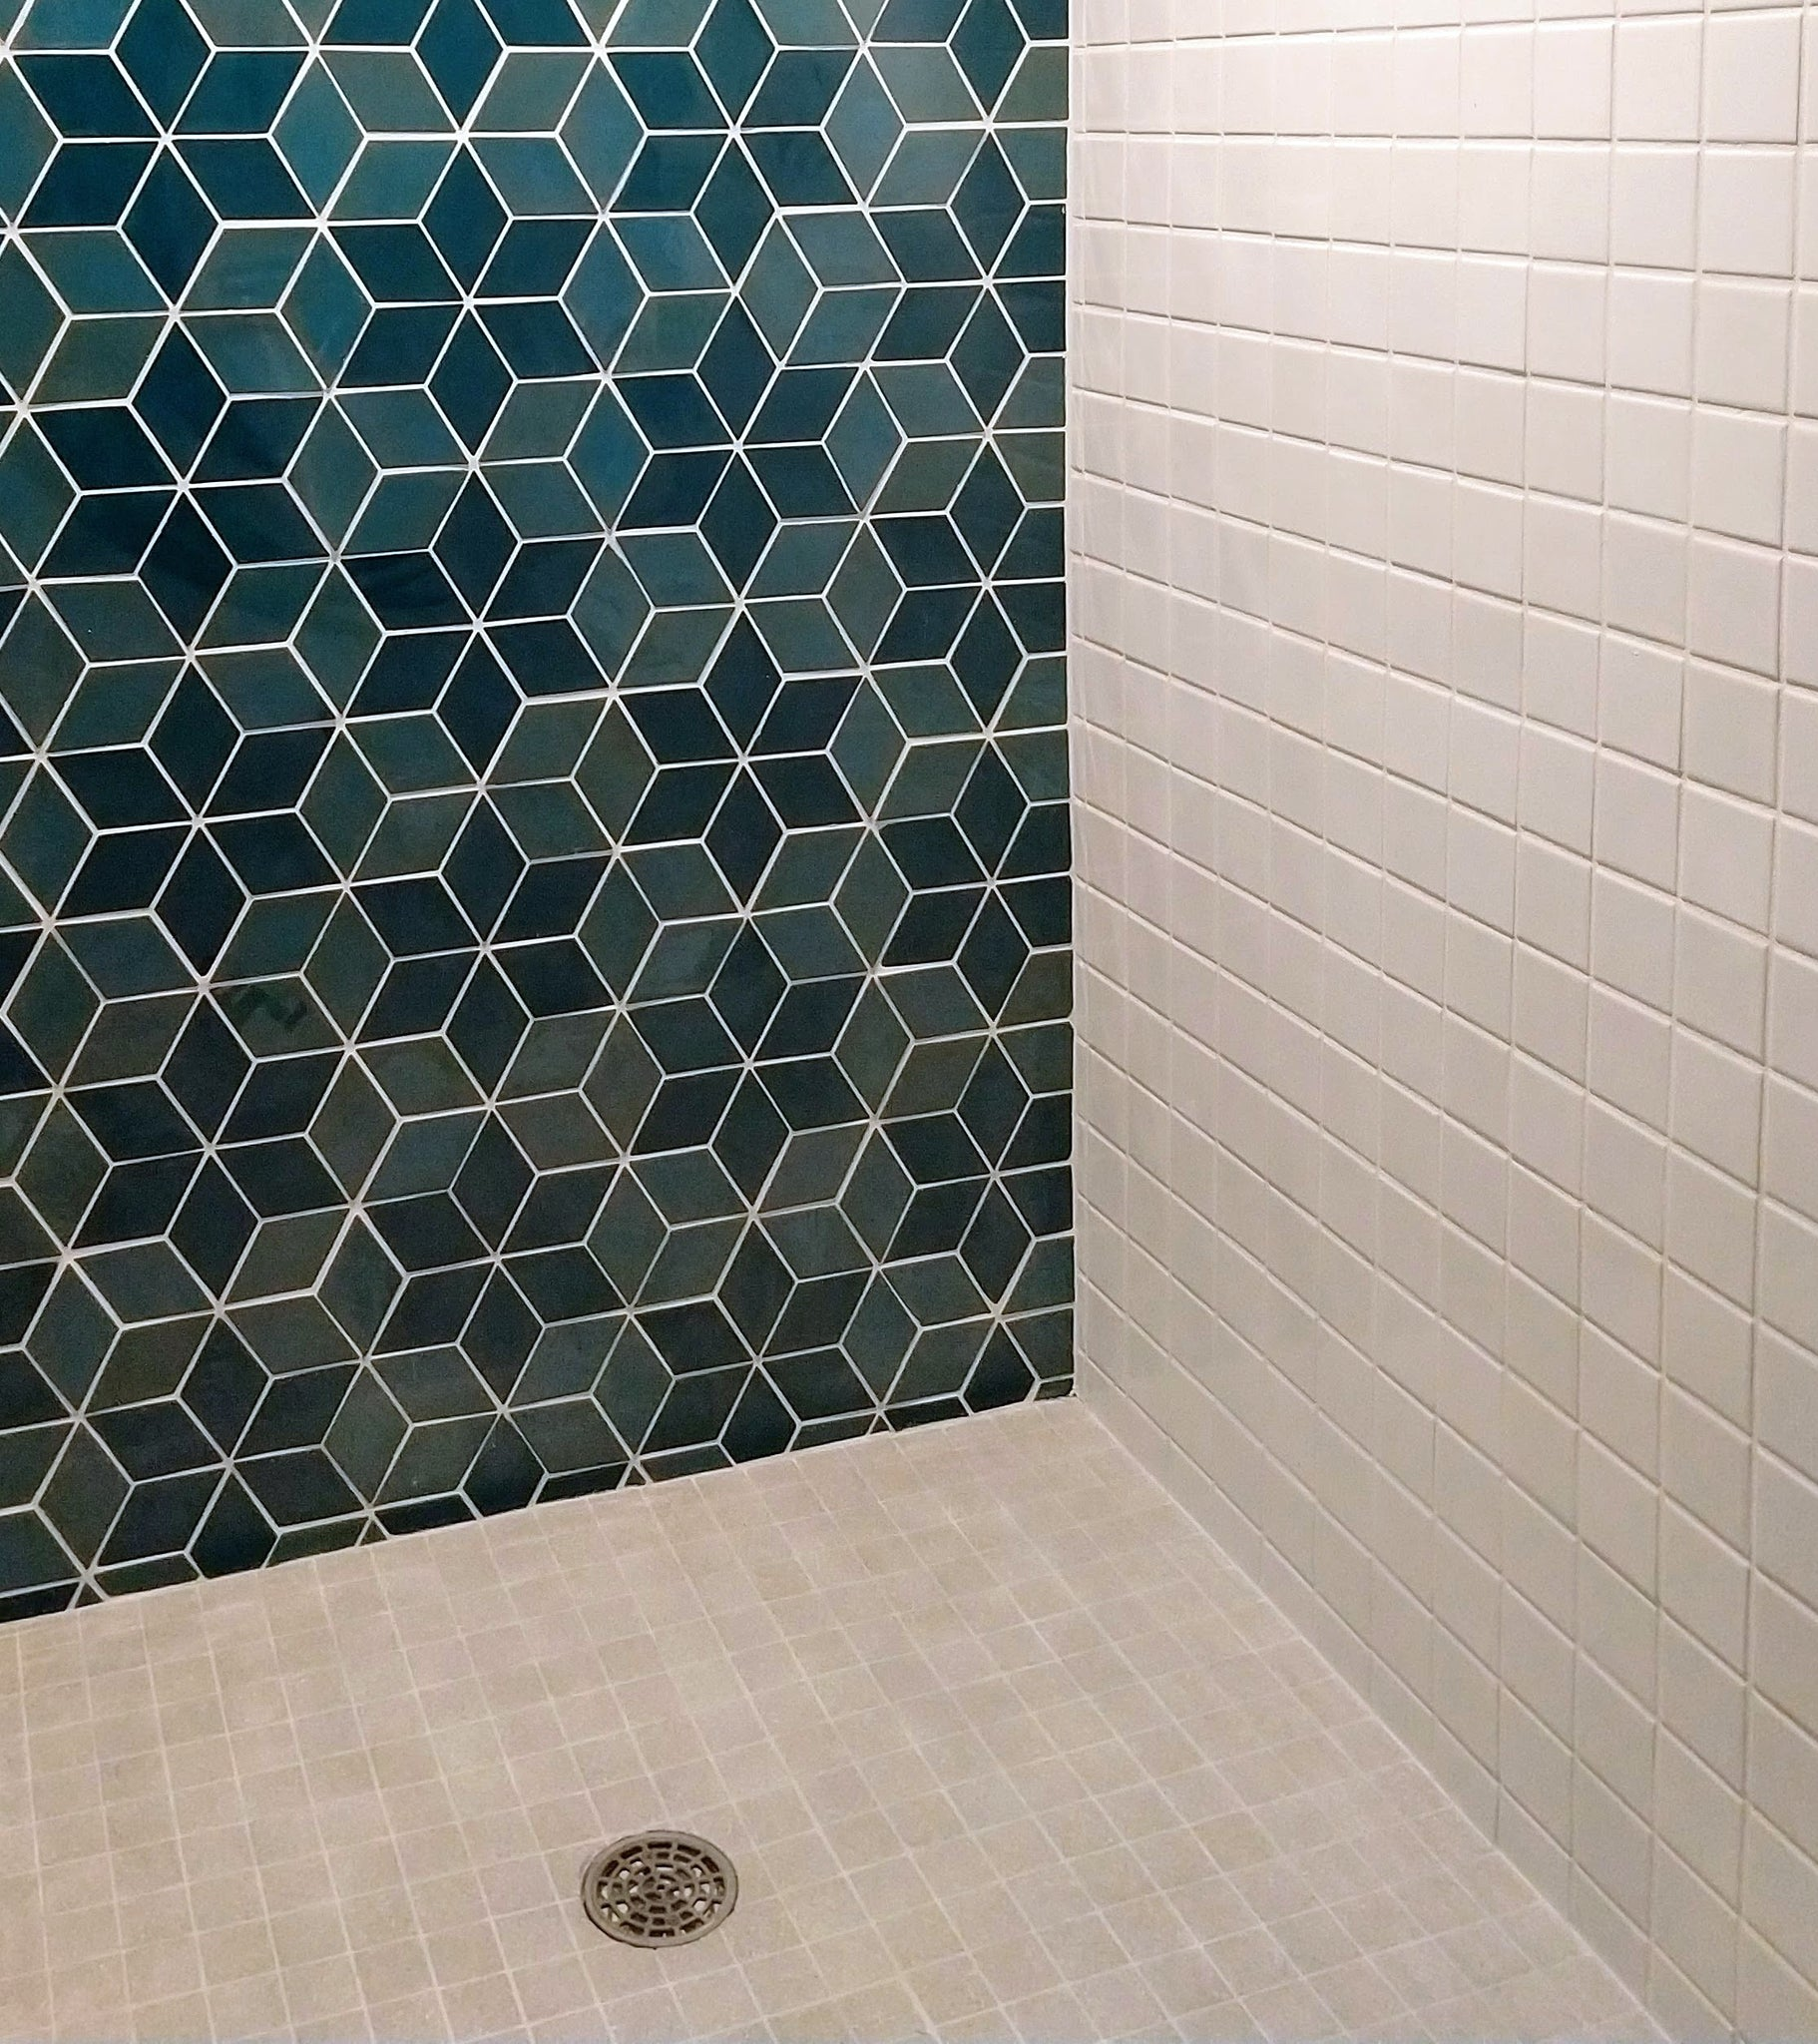 11 Ways to Incorporate Decorative Tile Accents | Mercury Mosaics